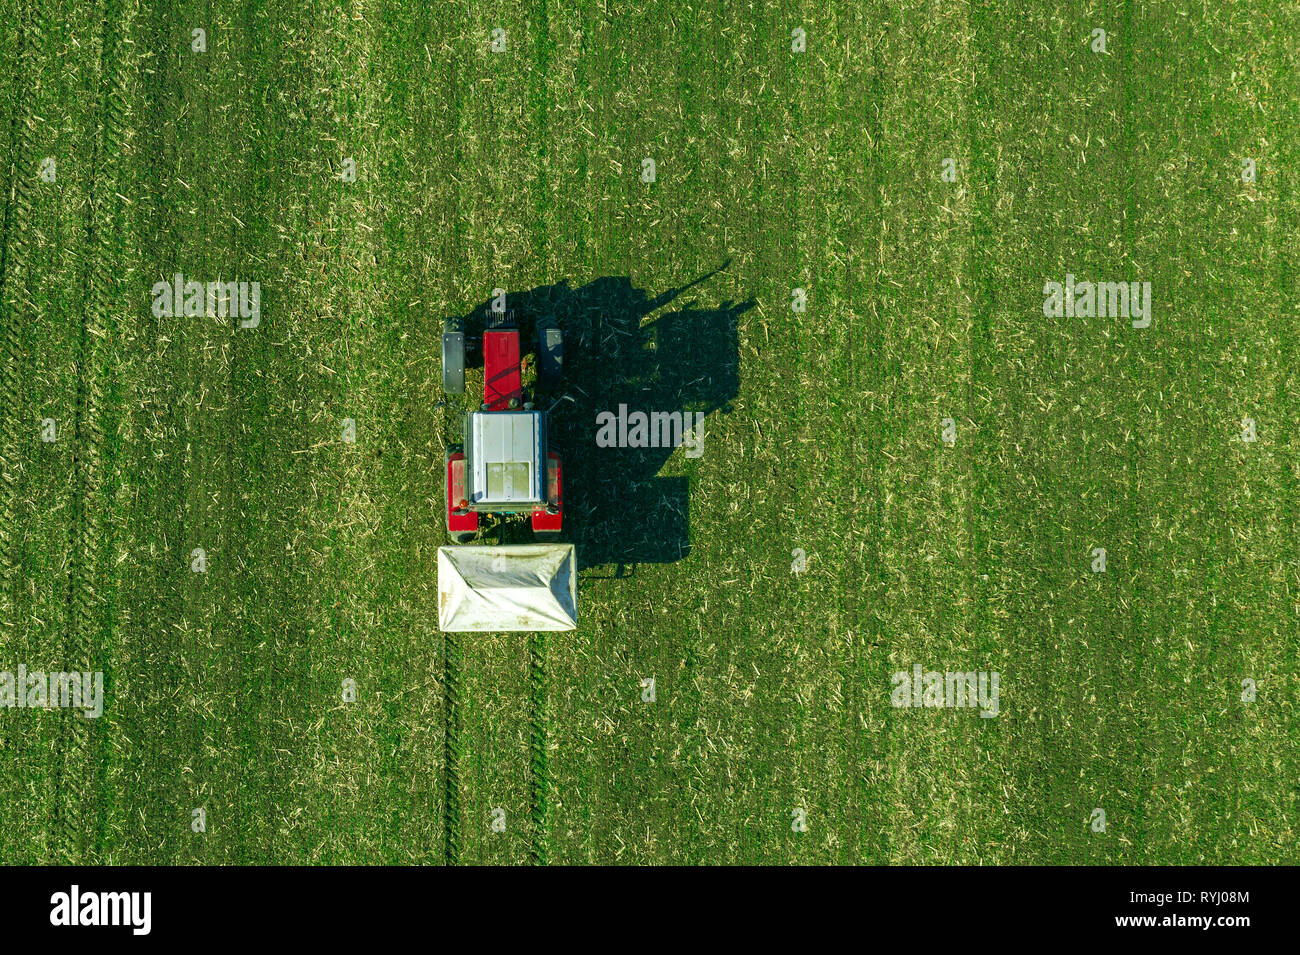 Agricultural tractor is fertilizing wheat crop field with NPK fertilizers, aerial view from drone pov - Stock Image